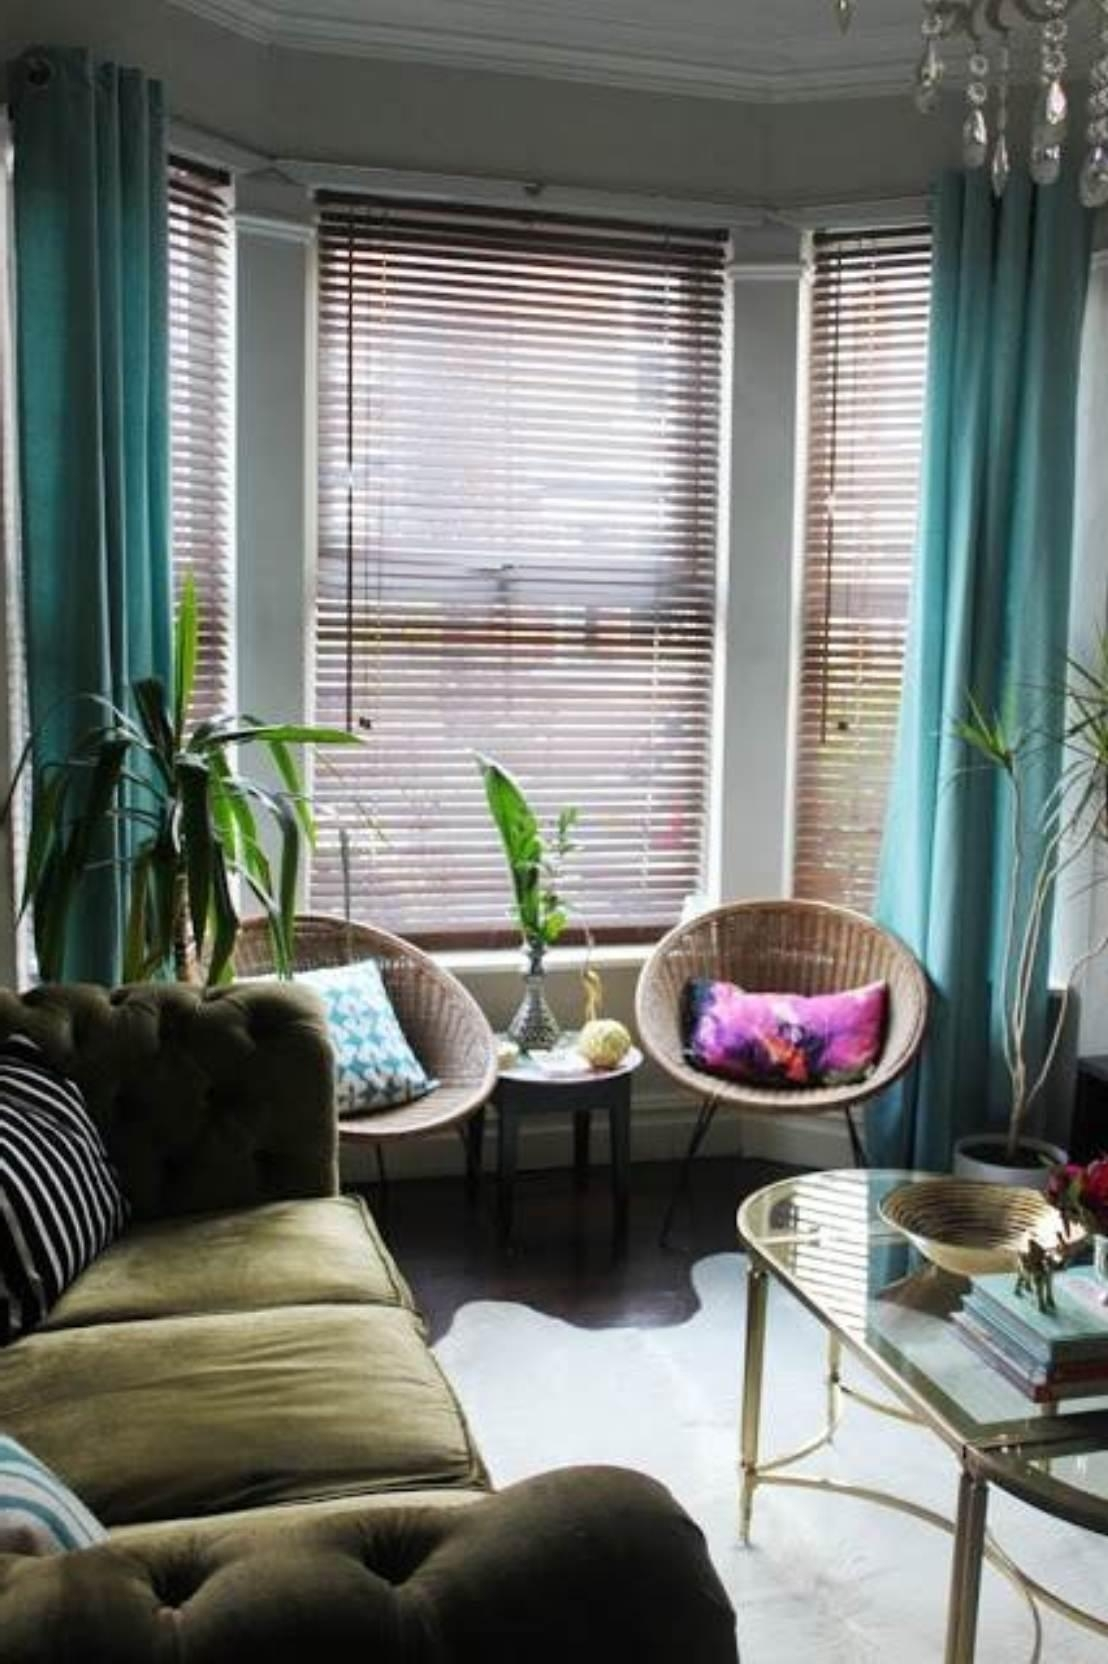 Decorate & Design : Curtains For Bay Windows Drapes Window Ideas Throughout Bay Window Sofas (View 11 of 20)